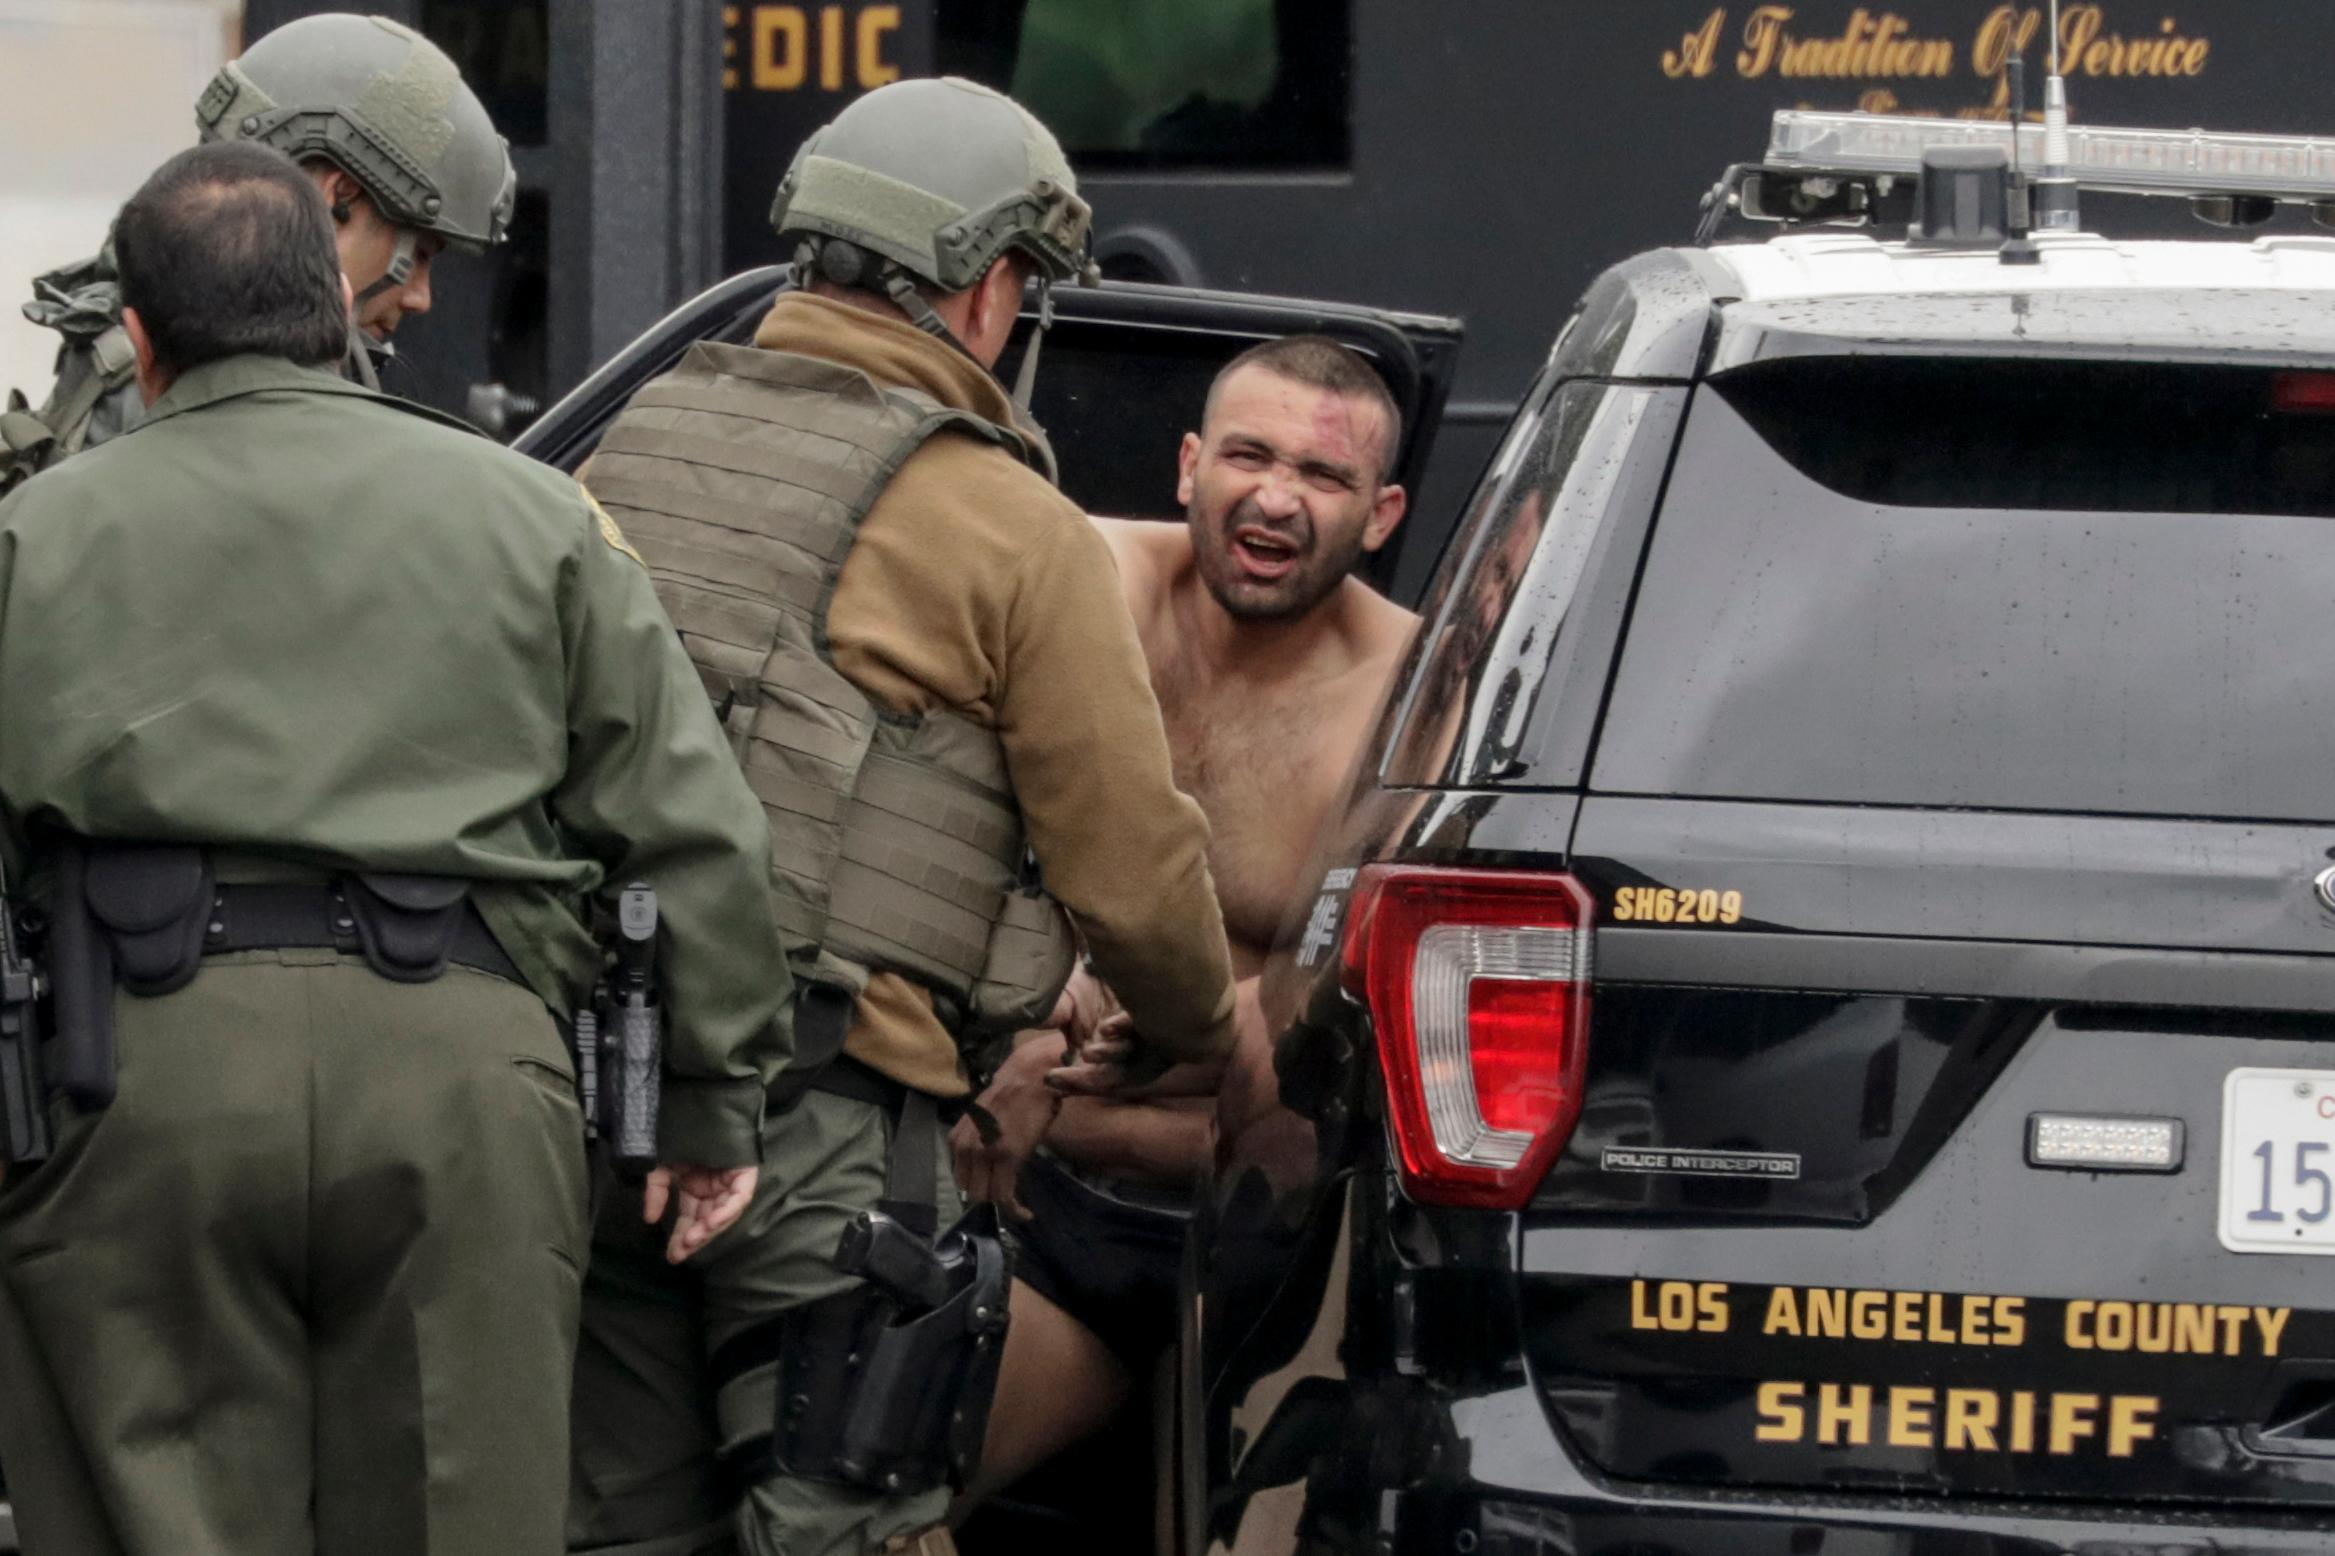 Los Angeles County Sheriff deputies escort a handcuffed man suspected of fatally shooting a Pomona police officer to a waiting car Saturday, March 10, 2018, in Pomona, Calif. (Irfan Khan/Los Angeles Times via AP)